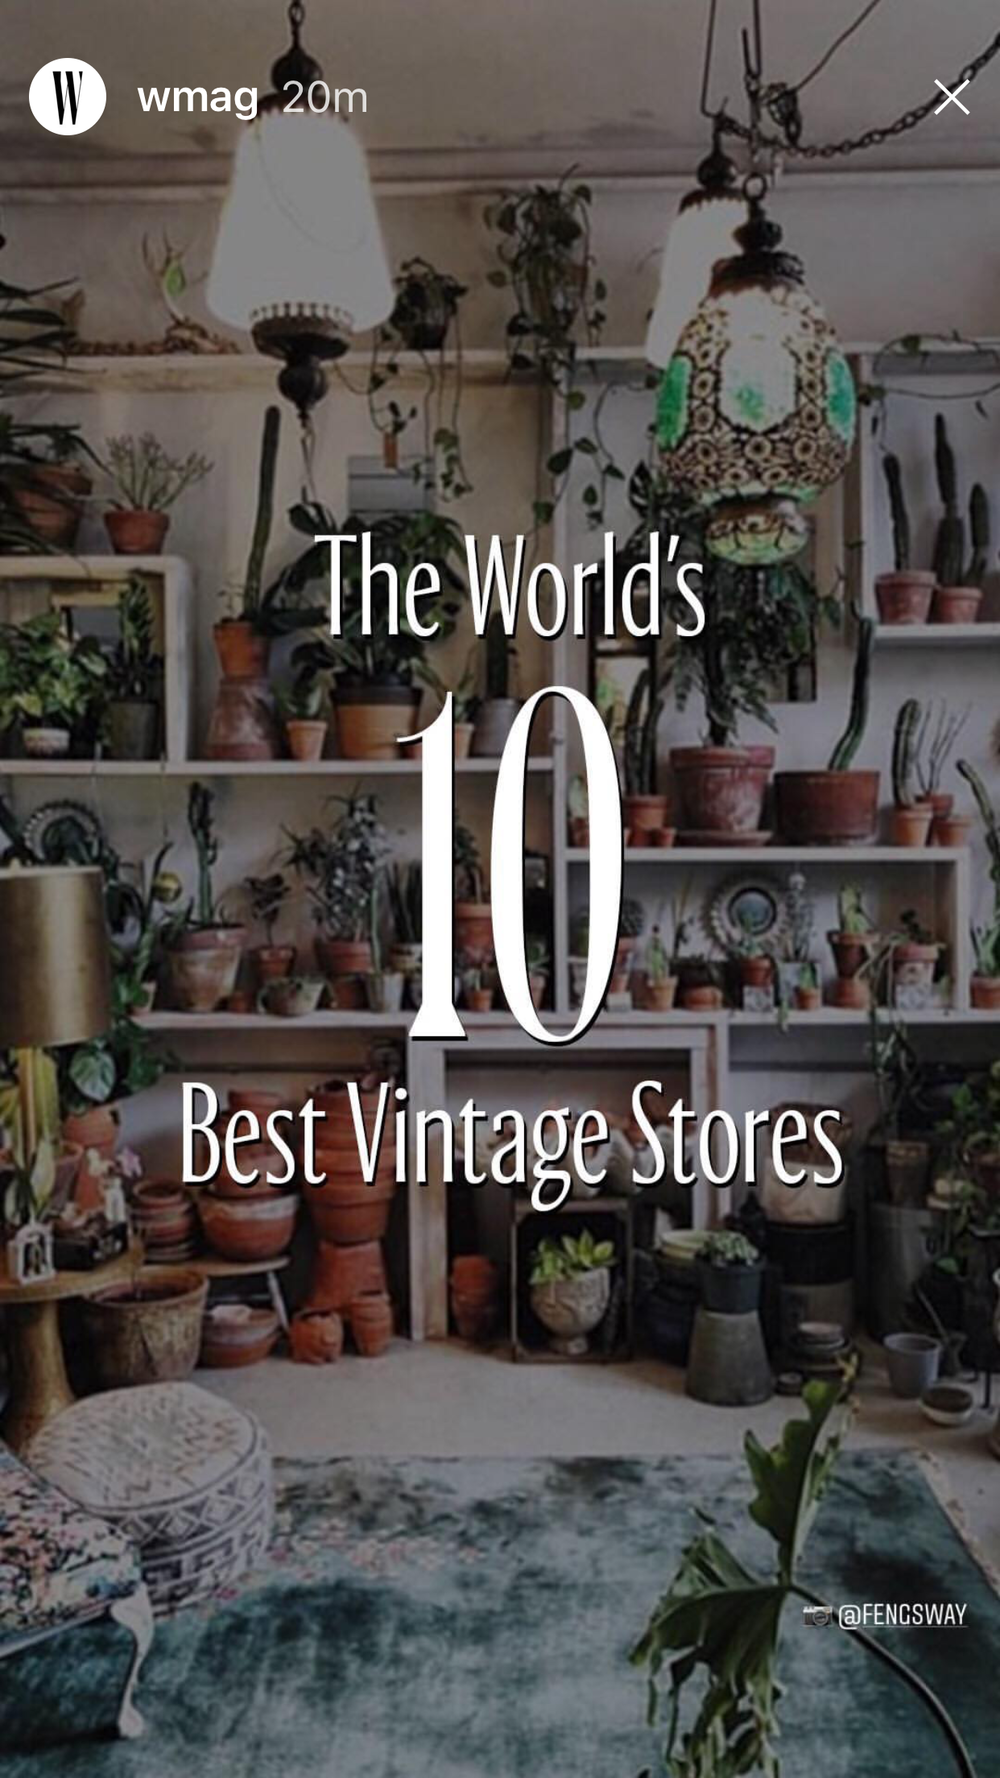 # 1 VINTAGE SHOP IN THE WORLD  W MAGAZINE  APRIL 2018